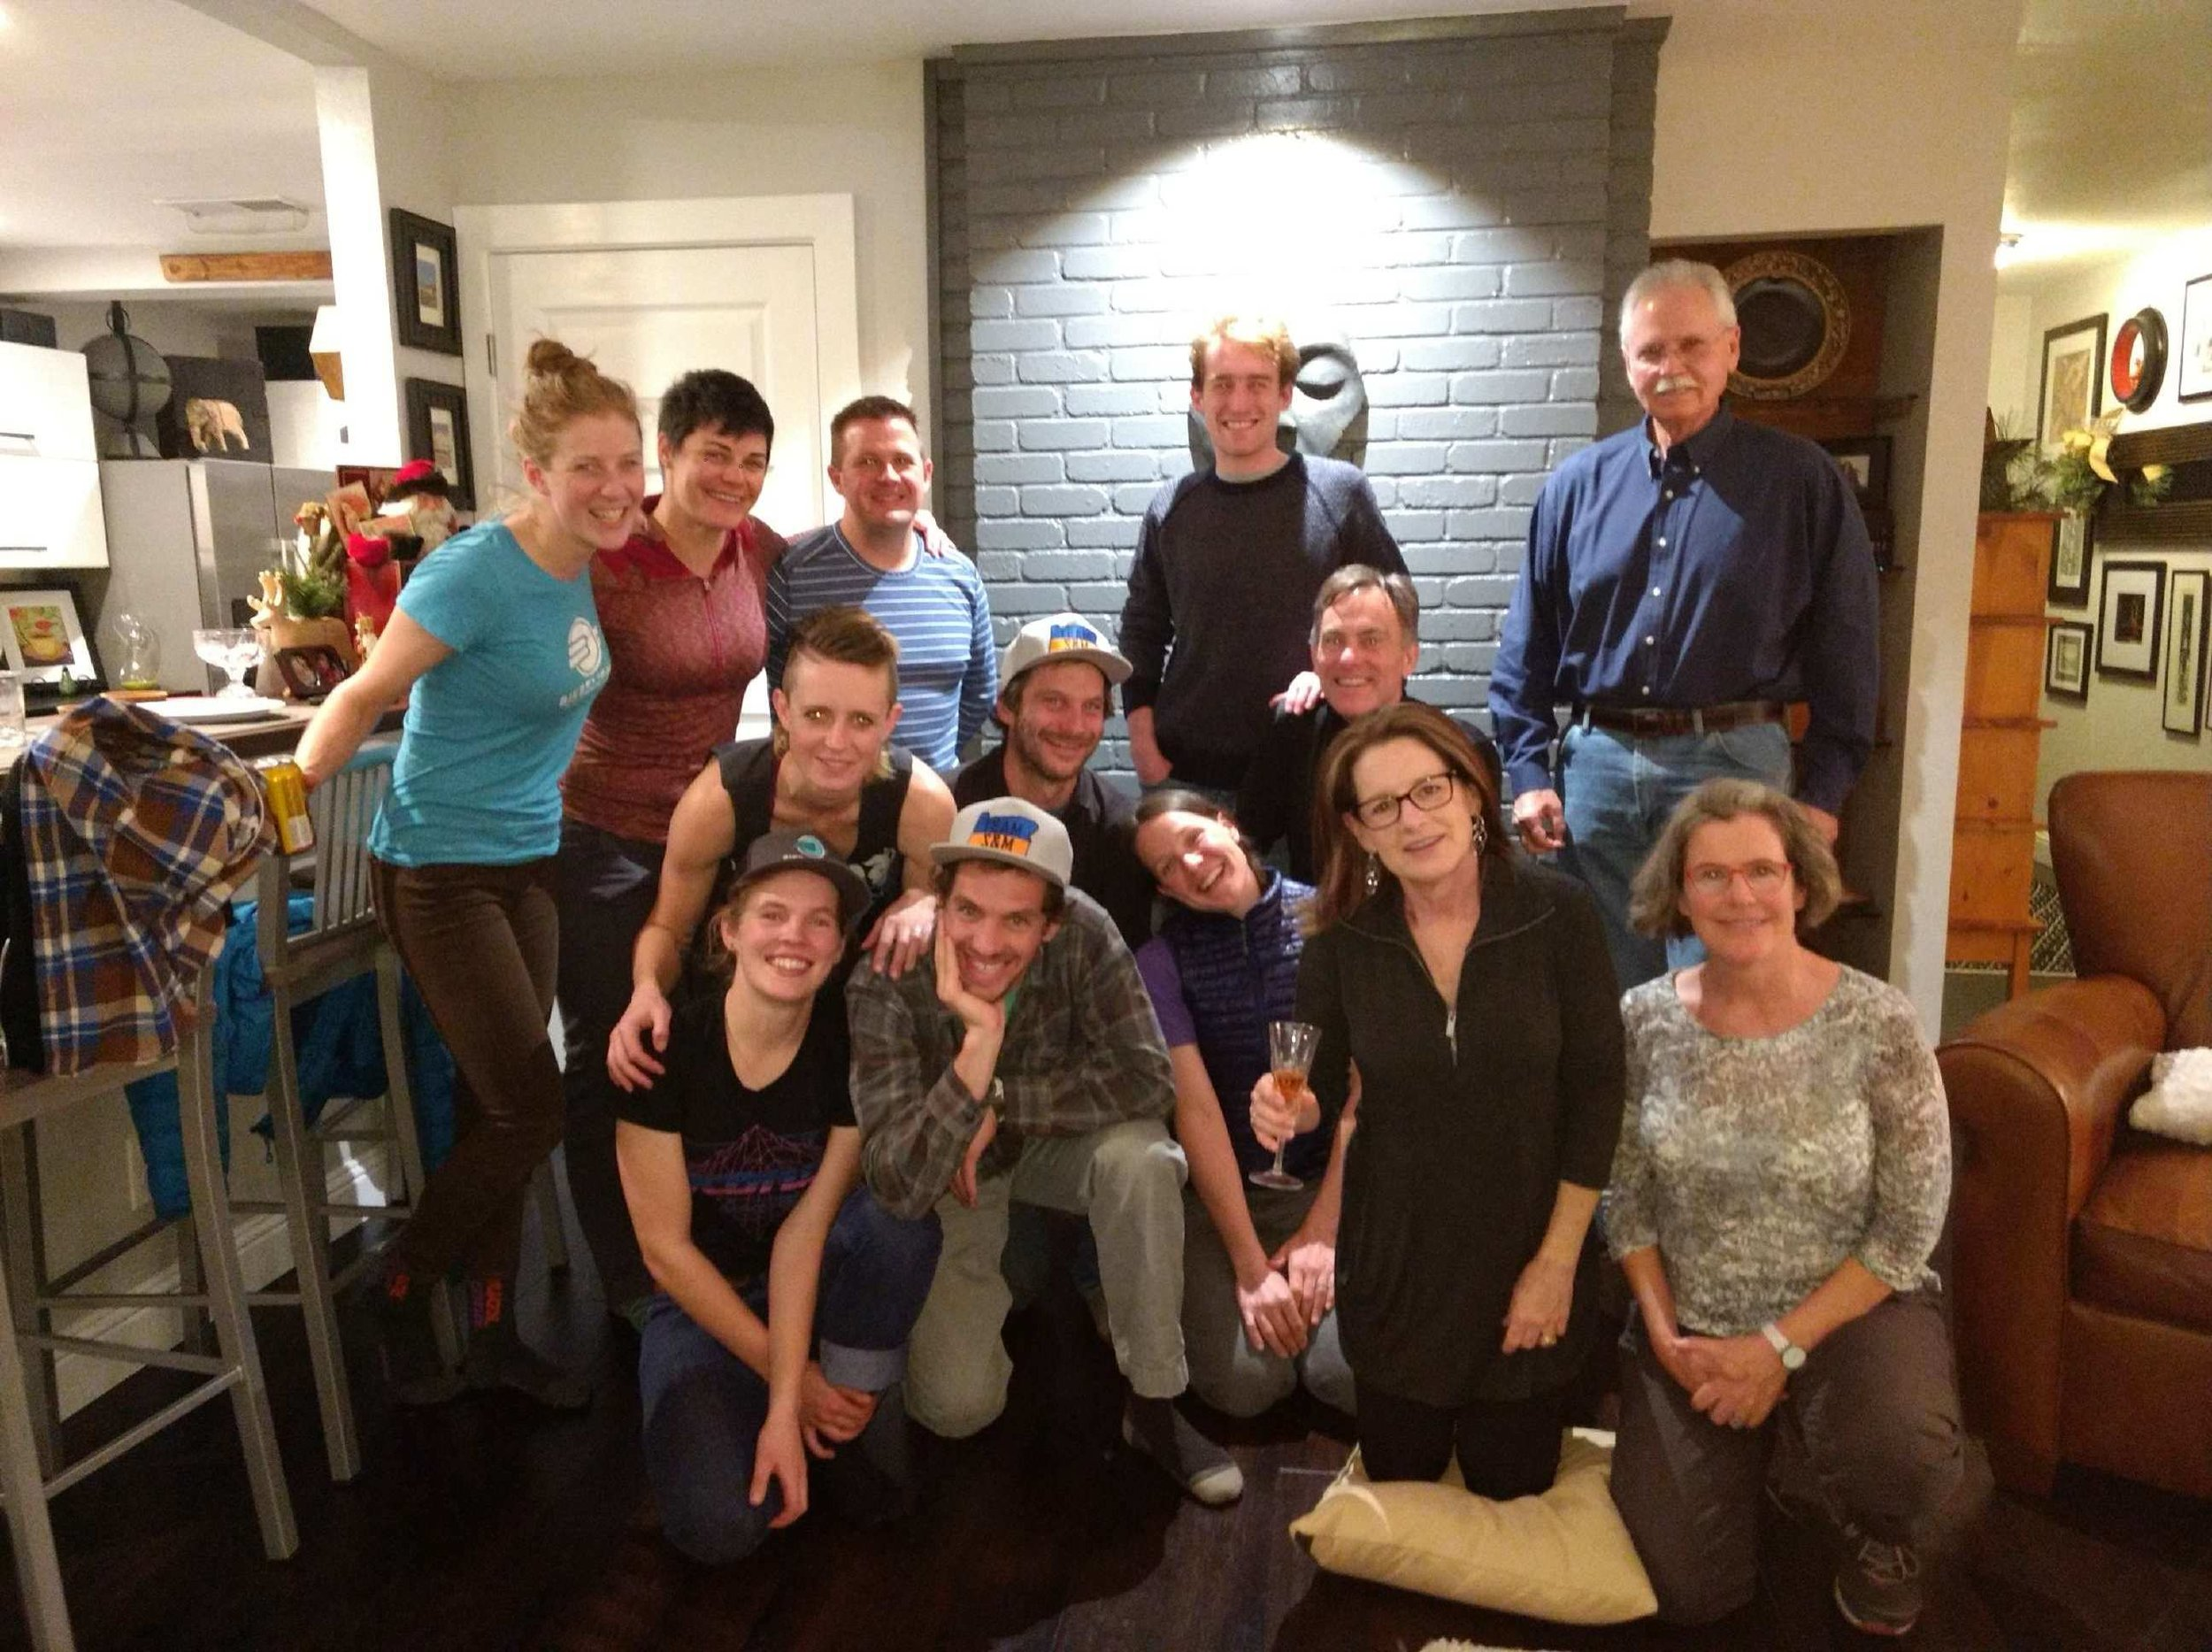 An awesome last night in town: the Team S&M family, Oregon friend & Speedvagen racer Laura Winberry, Warren family hosts, the MOMS, and more TX friends.